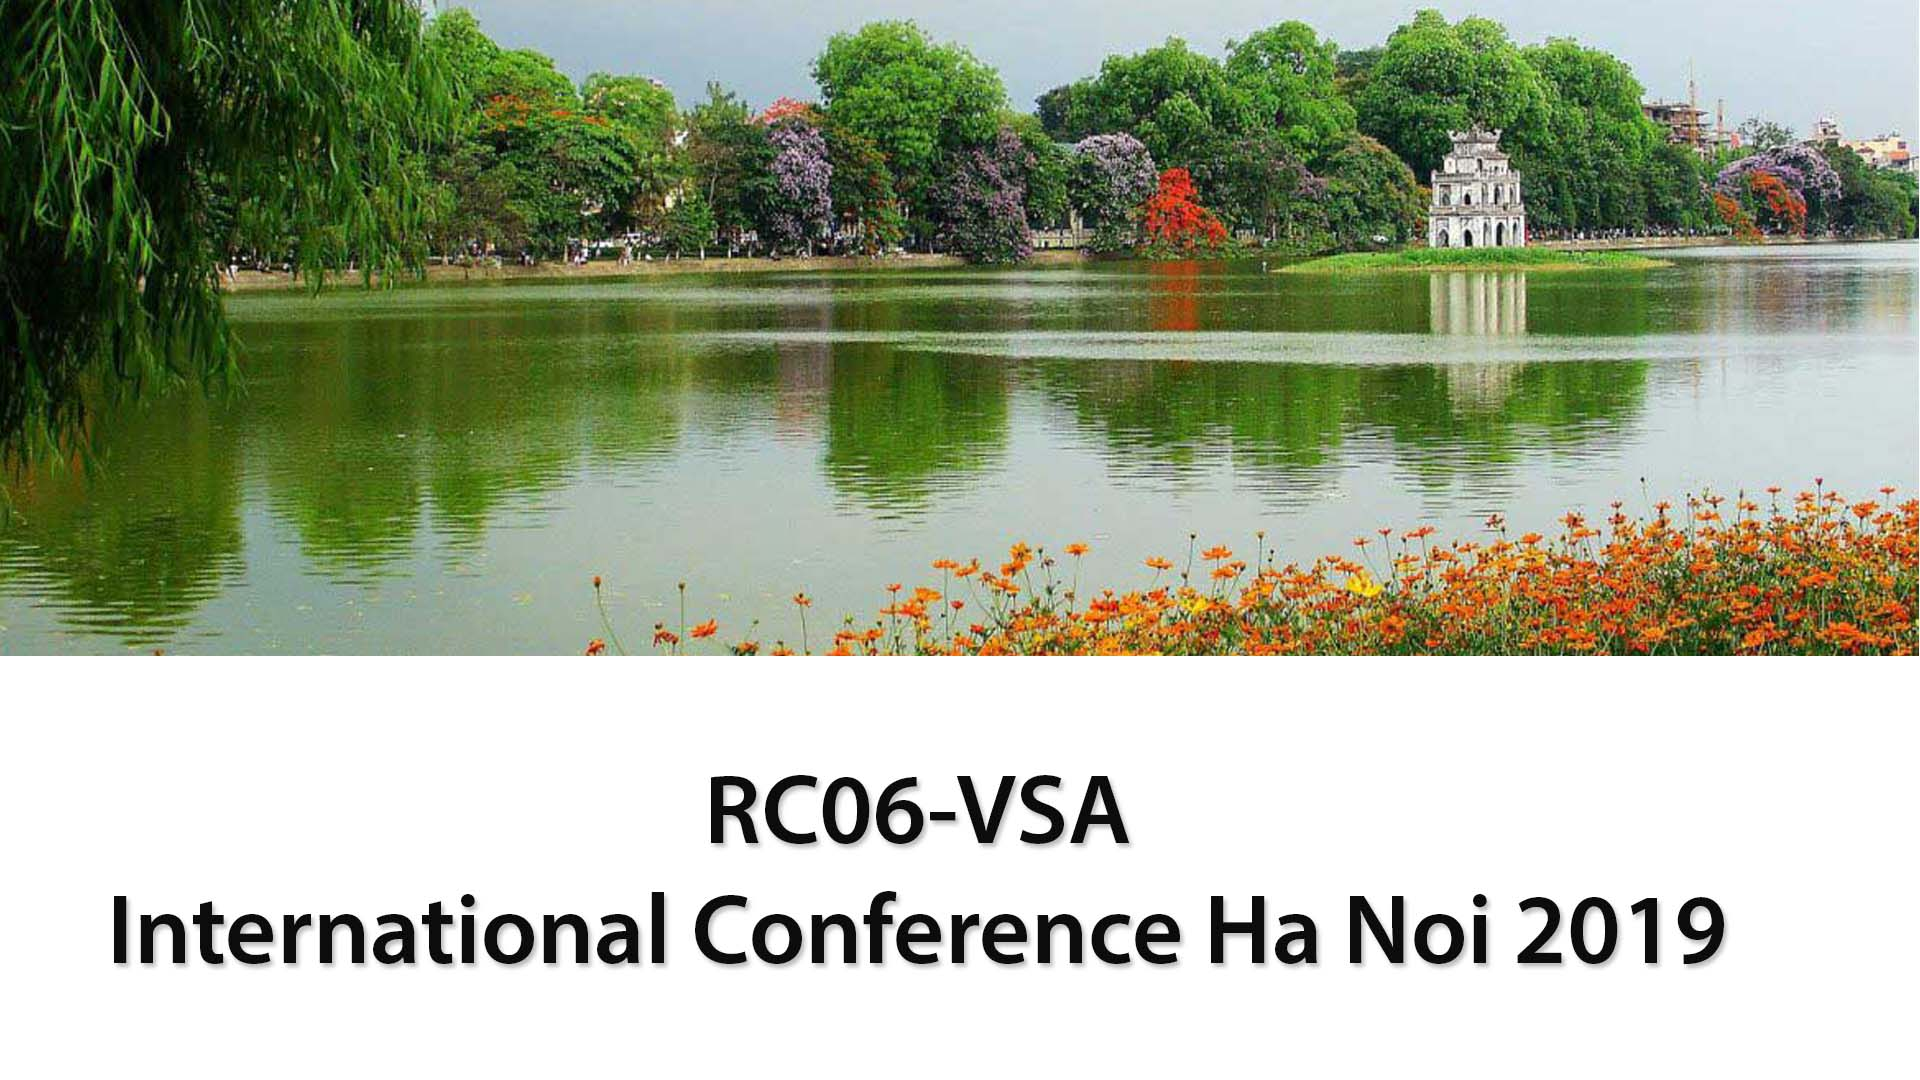 RC06-VSA International Conference Ha Noi 2019